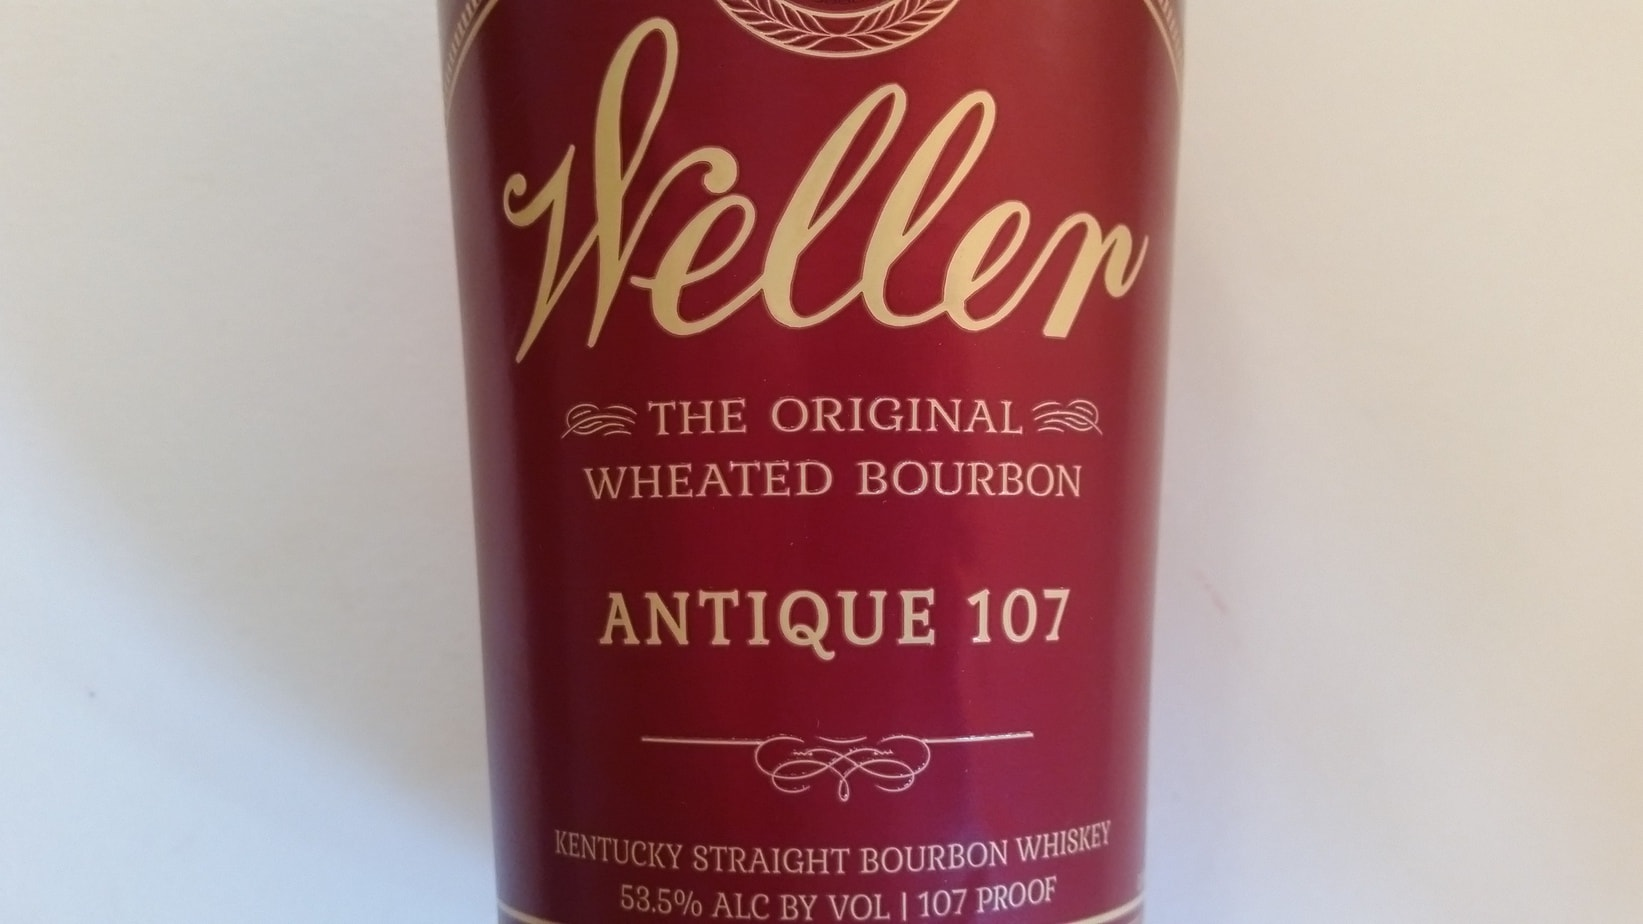 The Old Weller Antique 107 label